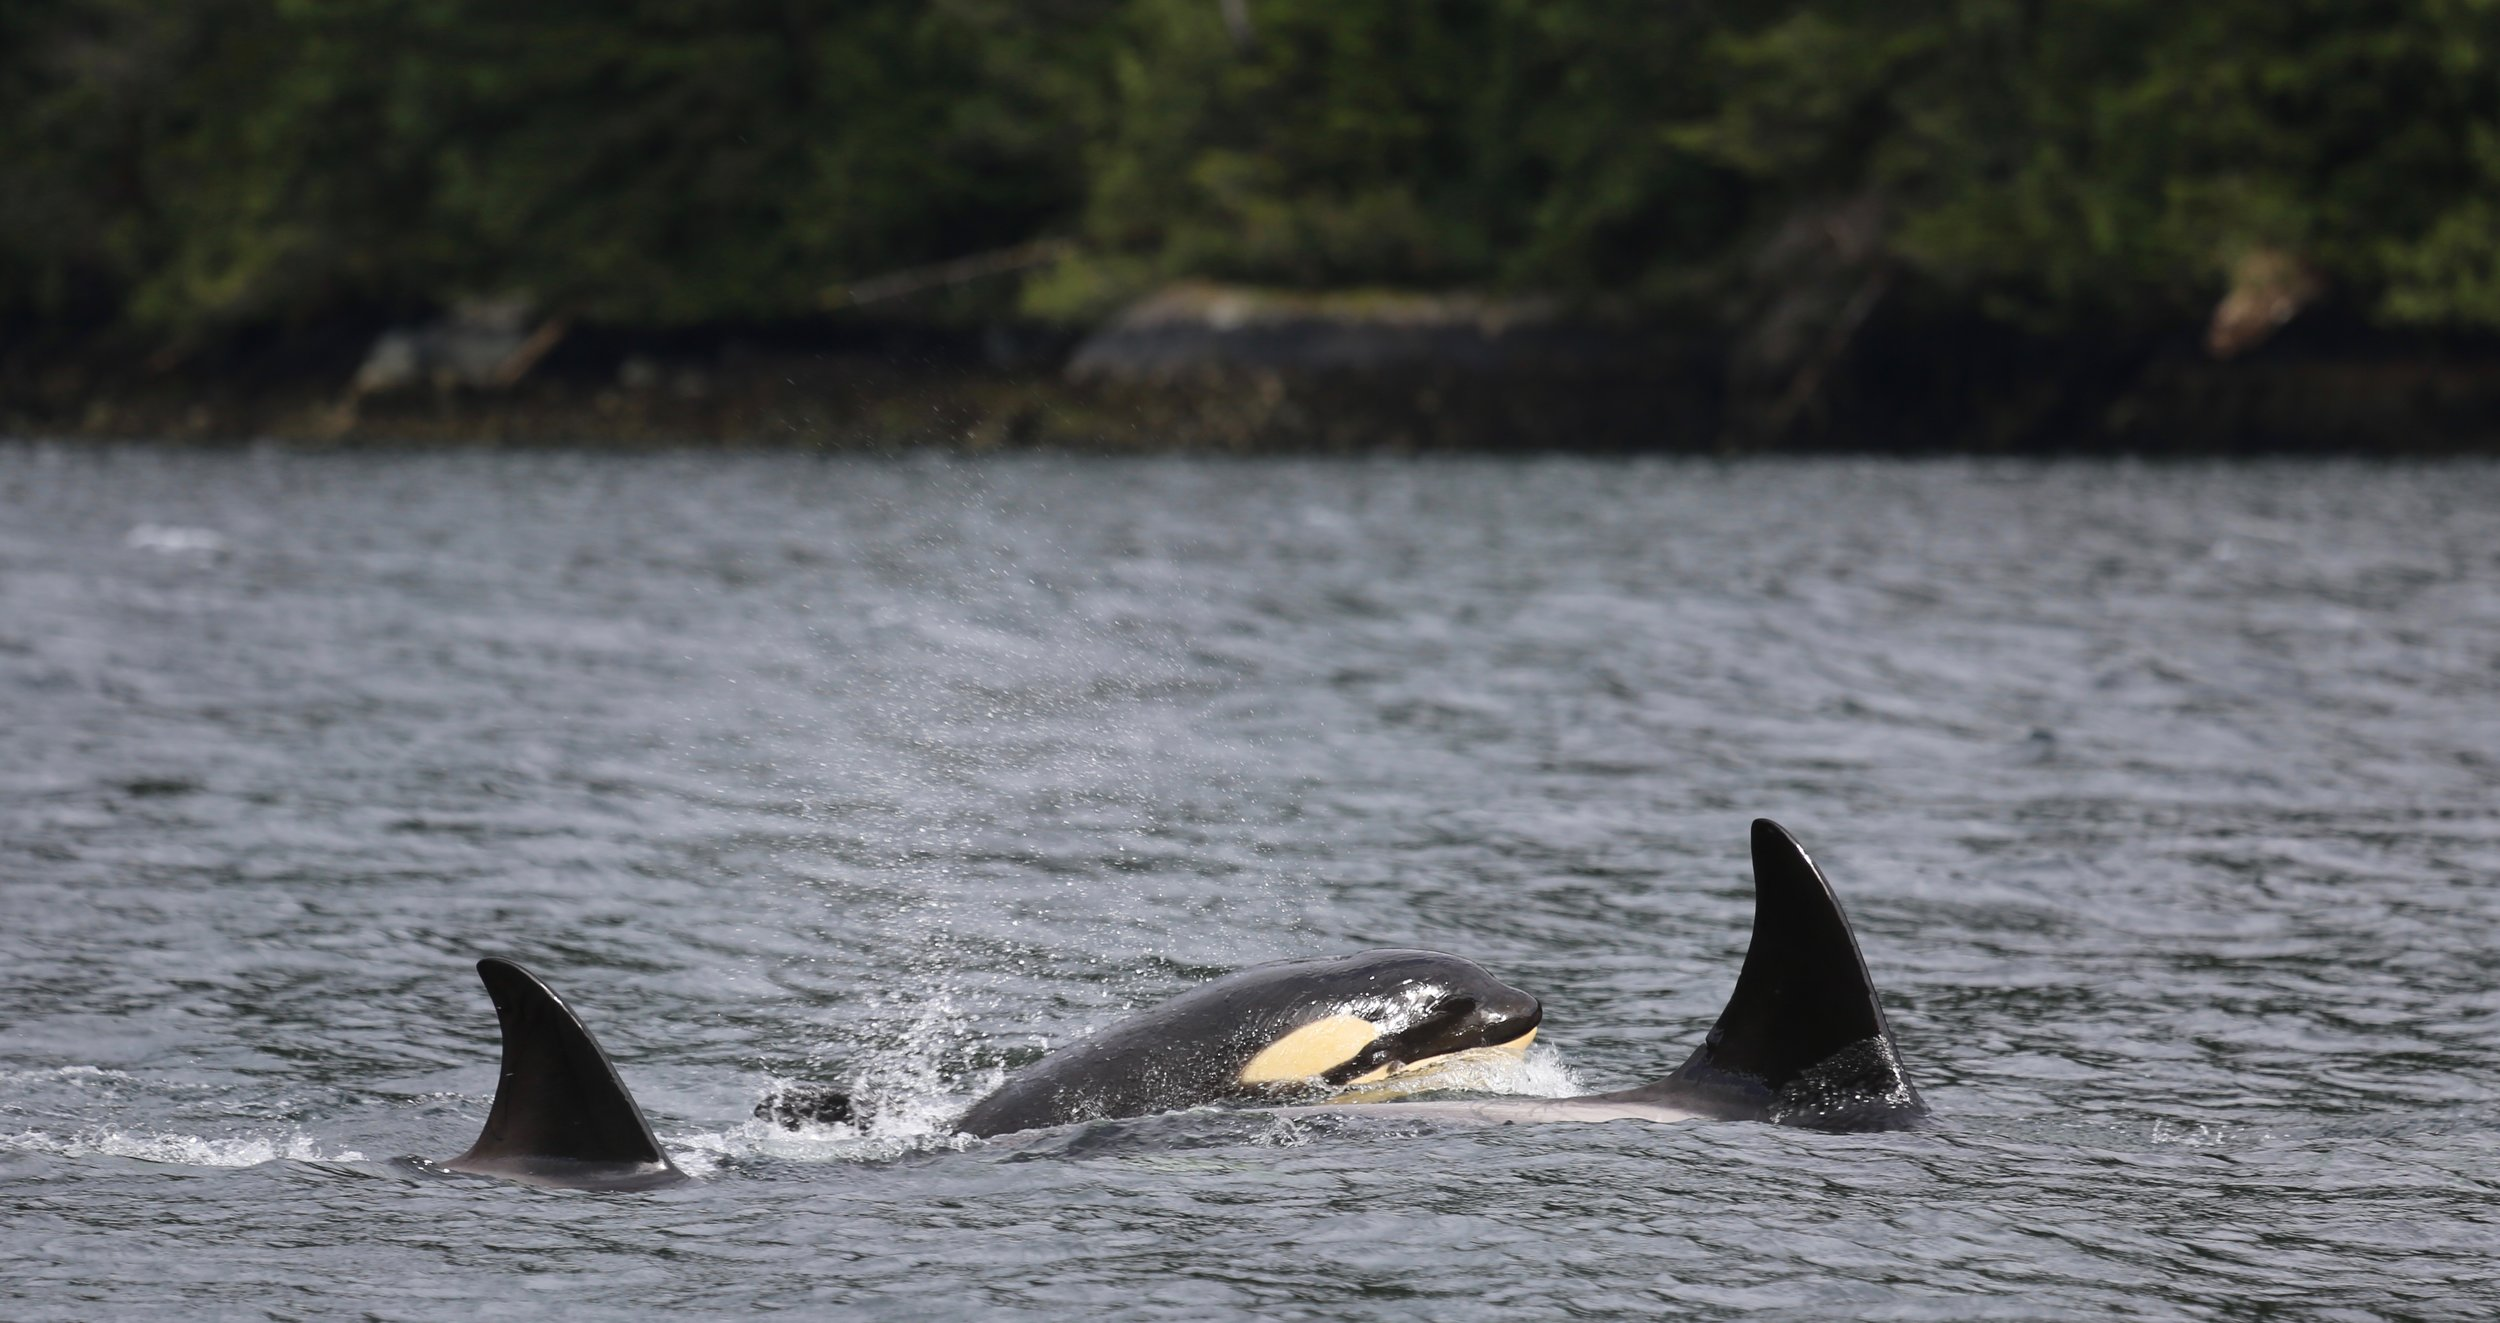 T023D with new calf, Tofino, BC